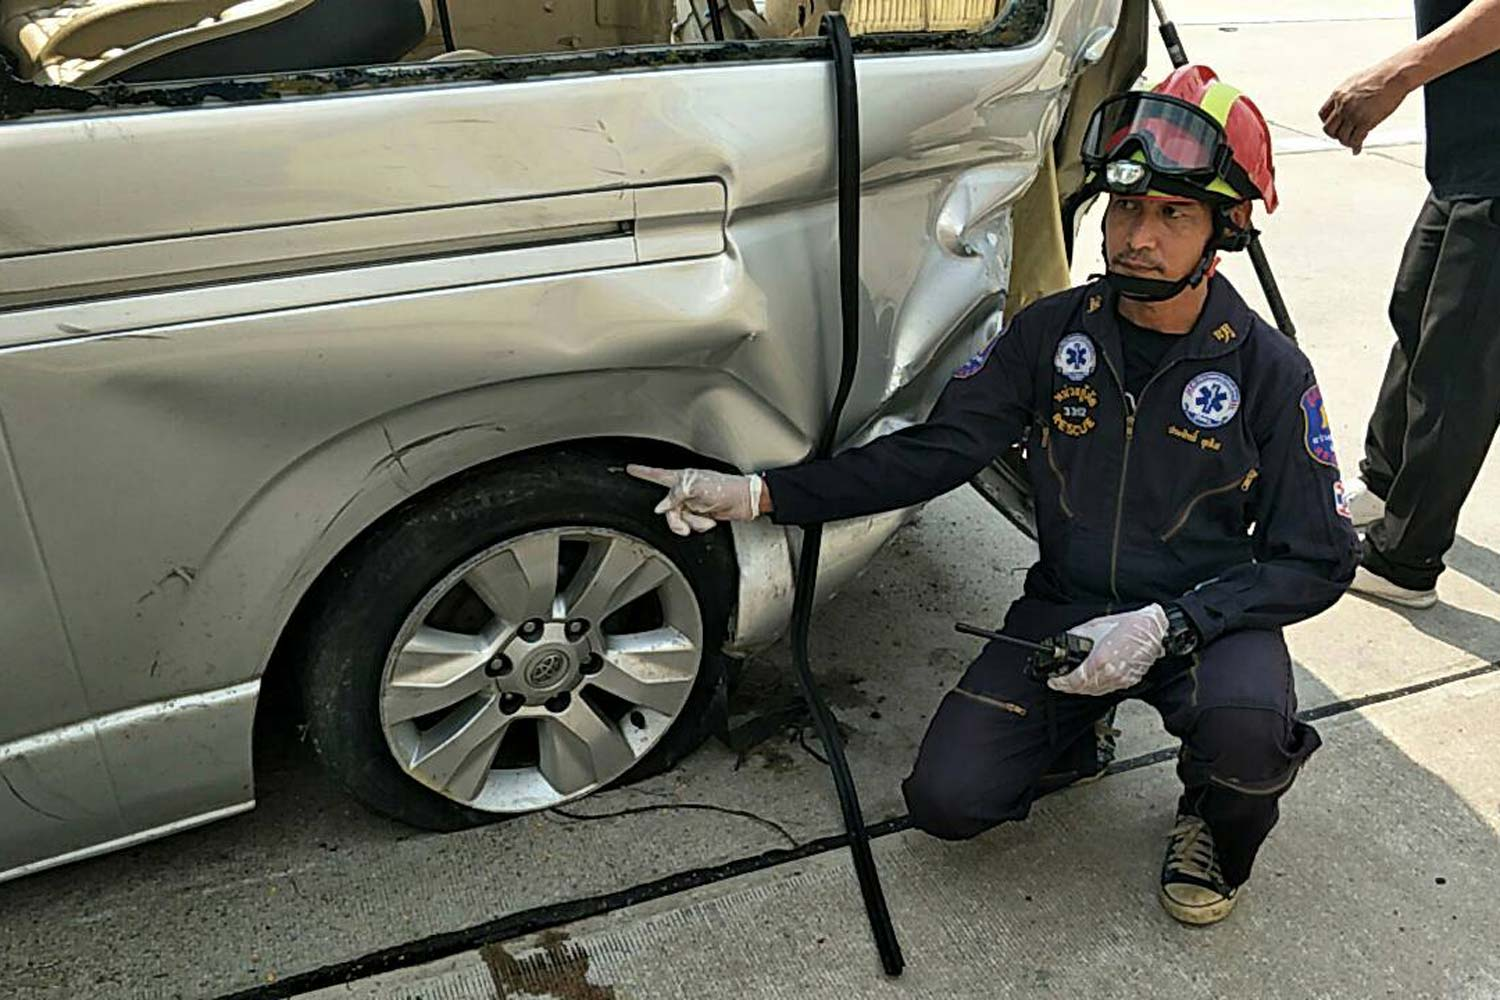 An emergency responder points out the rear tyre the van driver said burst and caused the vehicle to crash into a railing, injuring eight passengers. (Photo: Chaiyot Pupattanapong)